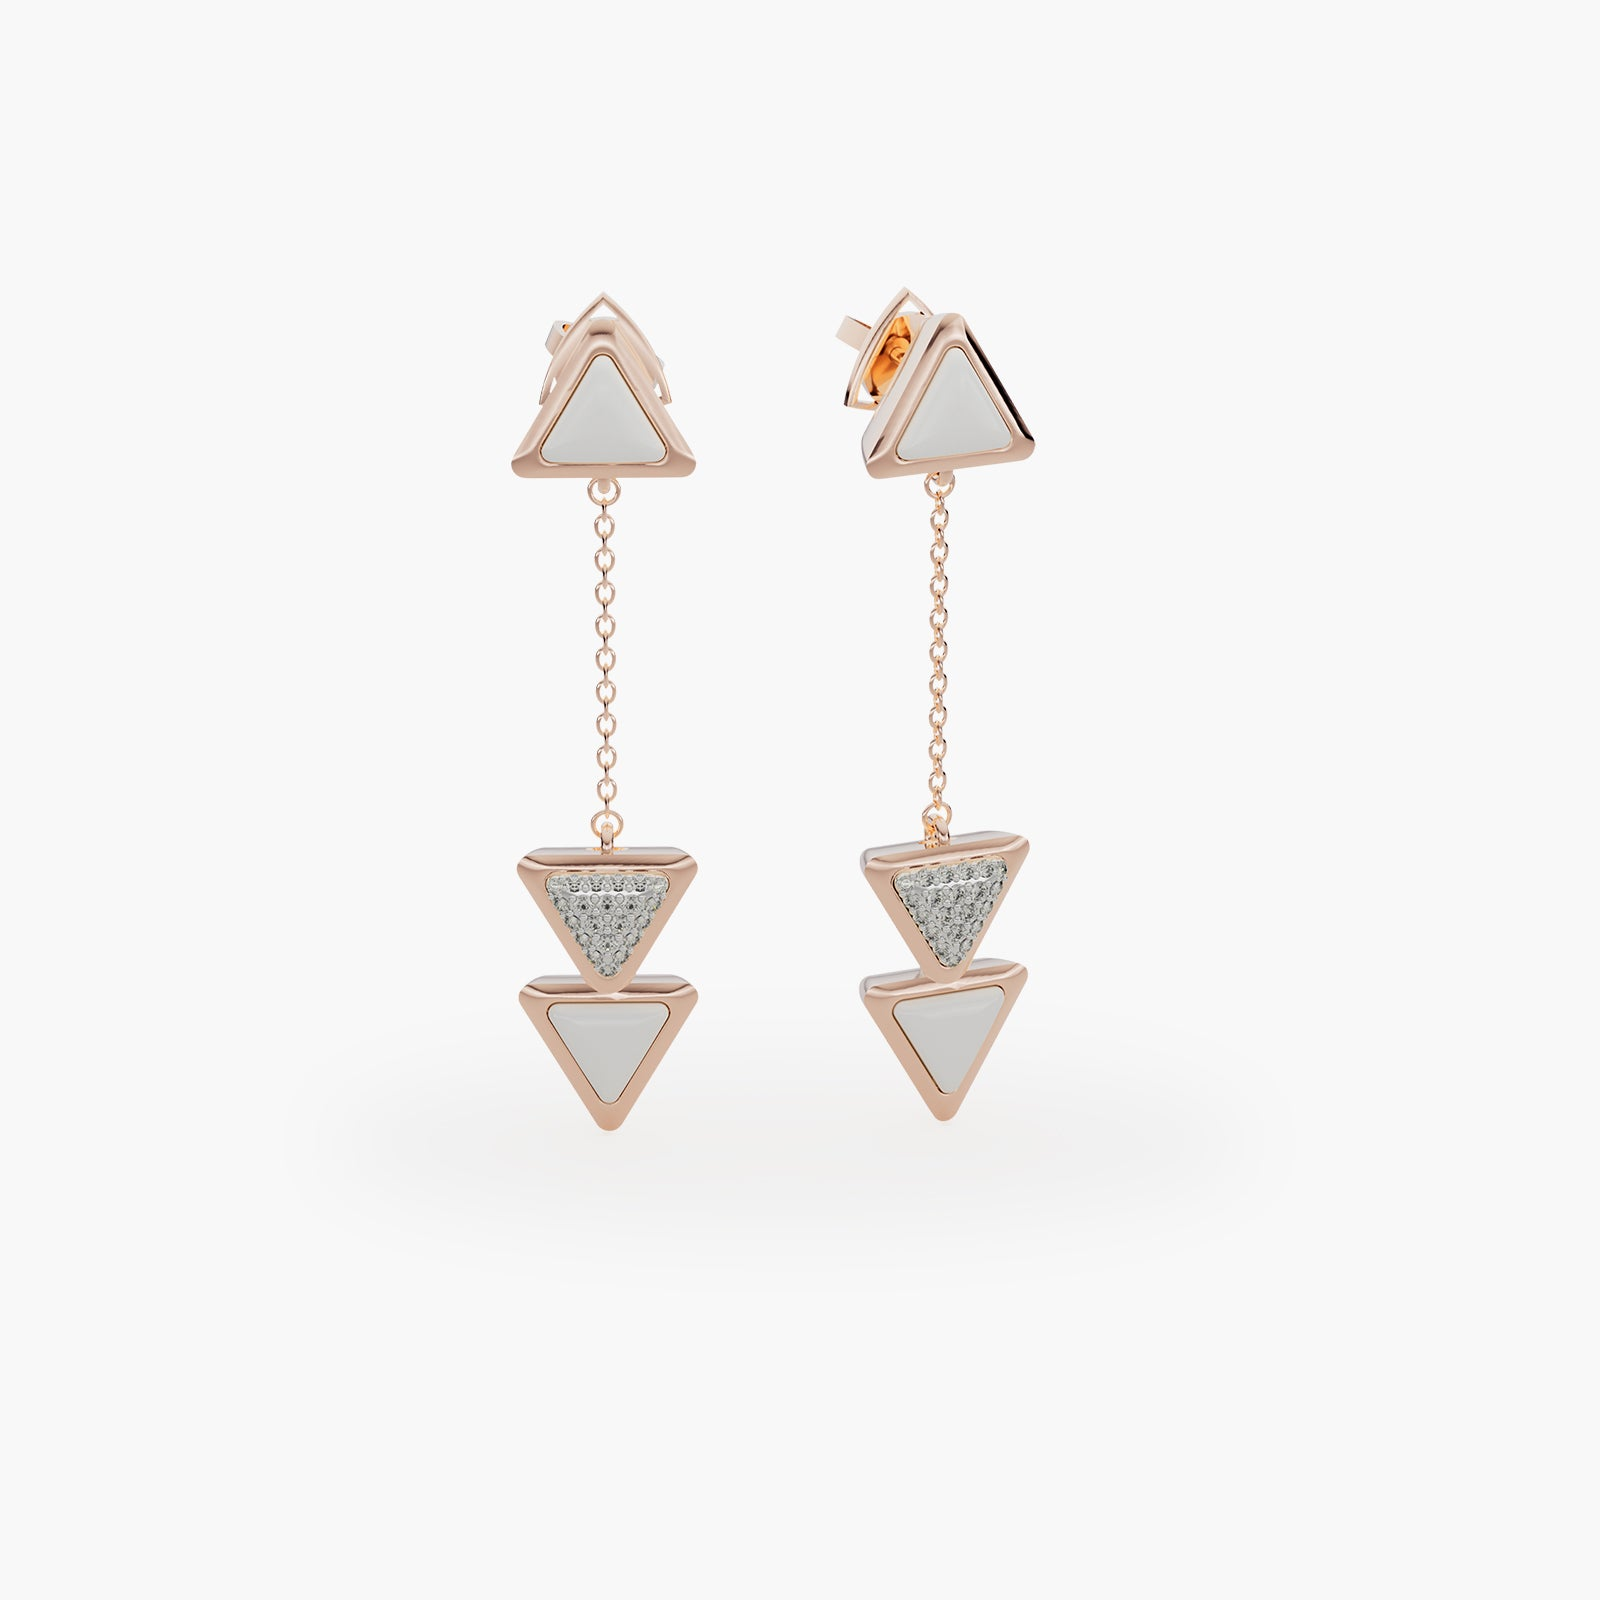 Earrings Dove Vai Rewind Exquisite Rose Gold Kogolong and Diamonds